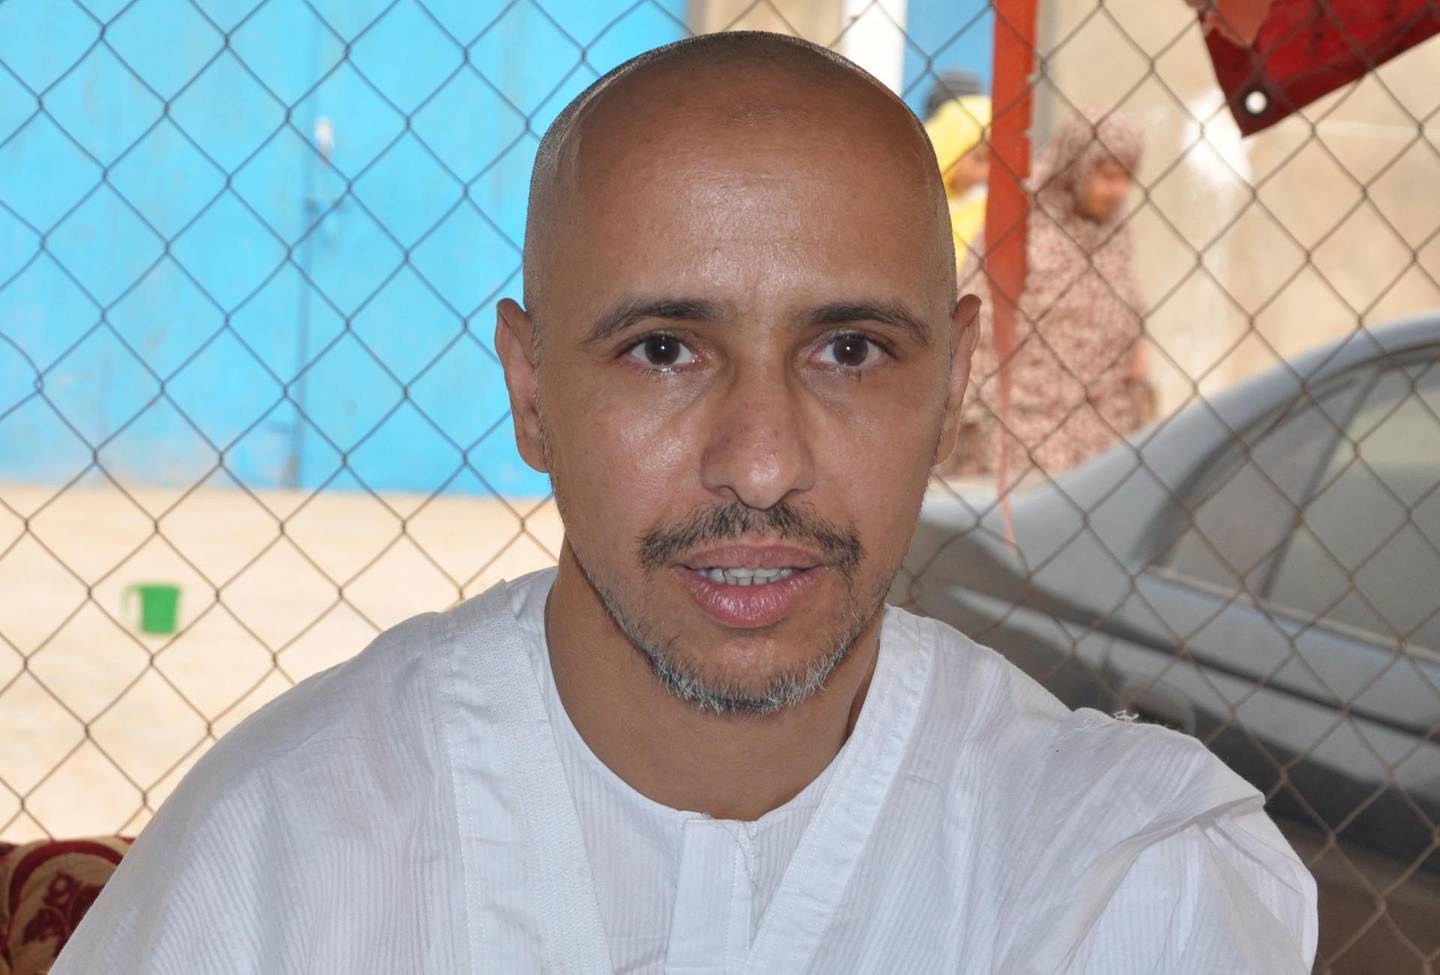 """Mohamedou Ould Slahi, a Guantanamo Bay prisoner who wrote a best-selling book about his experiences in the military prison, poses on October 18, 2016 in Nouakchott, after he was reunited with his family in his native Mauritania on October 17 after 14 years of detention - The transfer of Mohamedou Ould Slahi, believed to be the last inmate from Mauritania held at the facility in Cuba, brings the prison's remaining population down to 60. His case became a cause celebre after the publication last year of """"Guantanamo Diary"""", in which he outlines his treatment at the notorious US naval base in Cuba and says he was subjected to torture. (Photo by STRINGER / AFP)"""